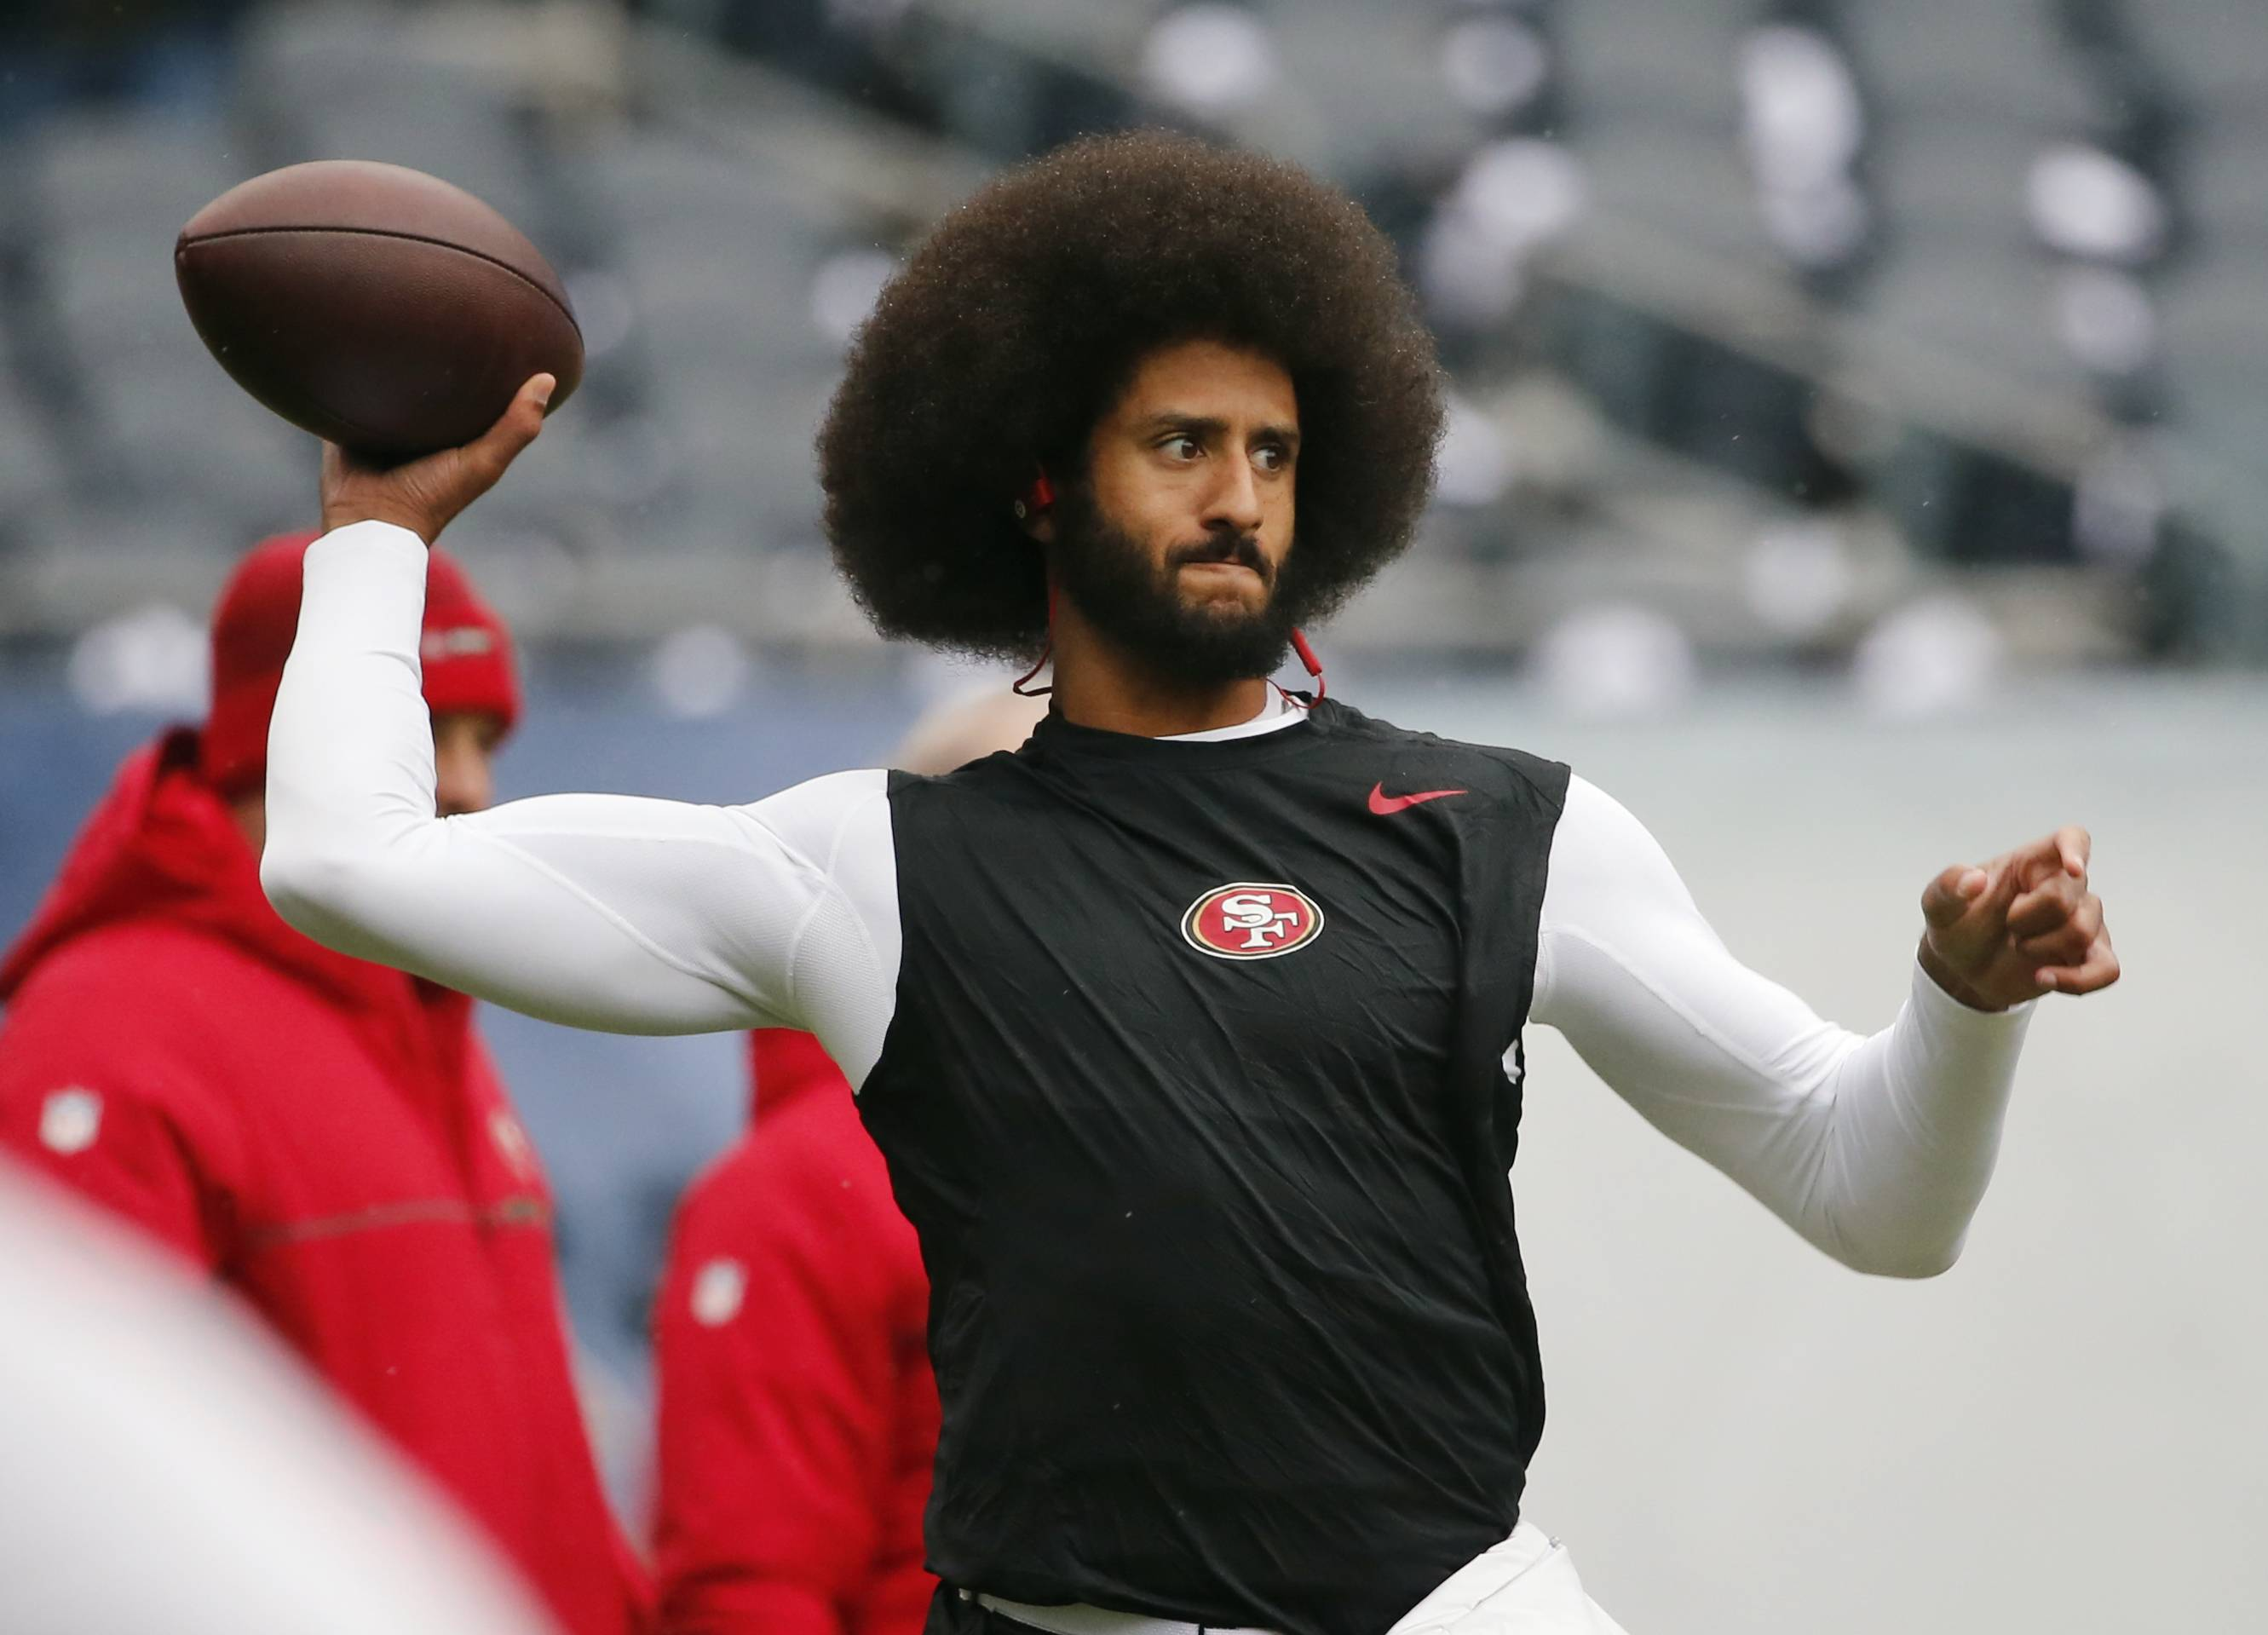 "FILE — In this Dec. 4, 2016, file photo, San Francisco 49ers quarterback Colin Kaepernick warms up before an NFL football game against the Chicago Bears. Spike Lee said on Instagram Sunday, March 19, 2017, that it was ""fishy"" that Kaepernick, now a free agent, hadn't been signed."" (AP Photo/Charles Rex Arbogast, File)"